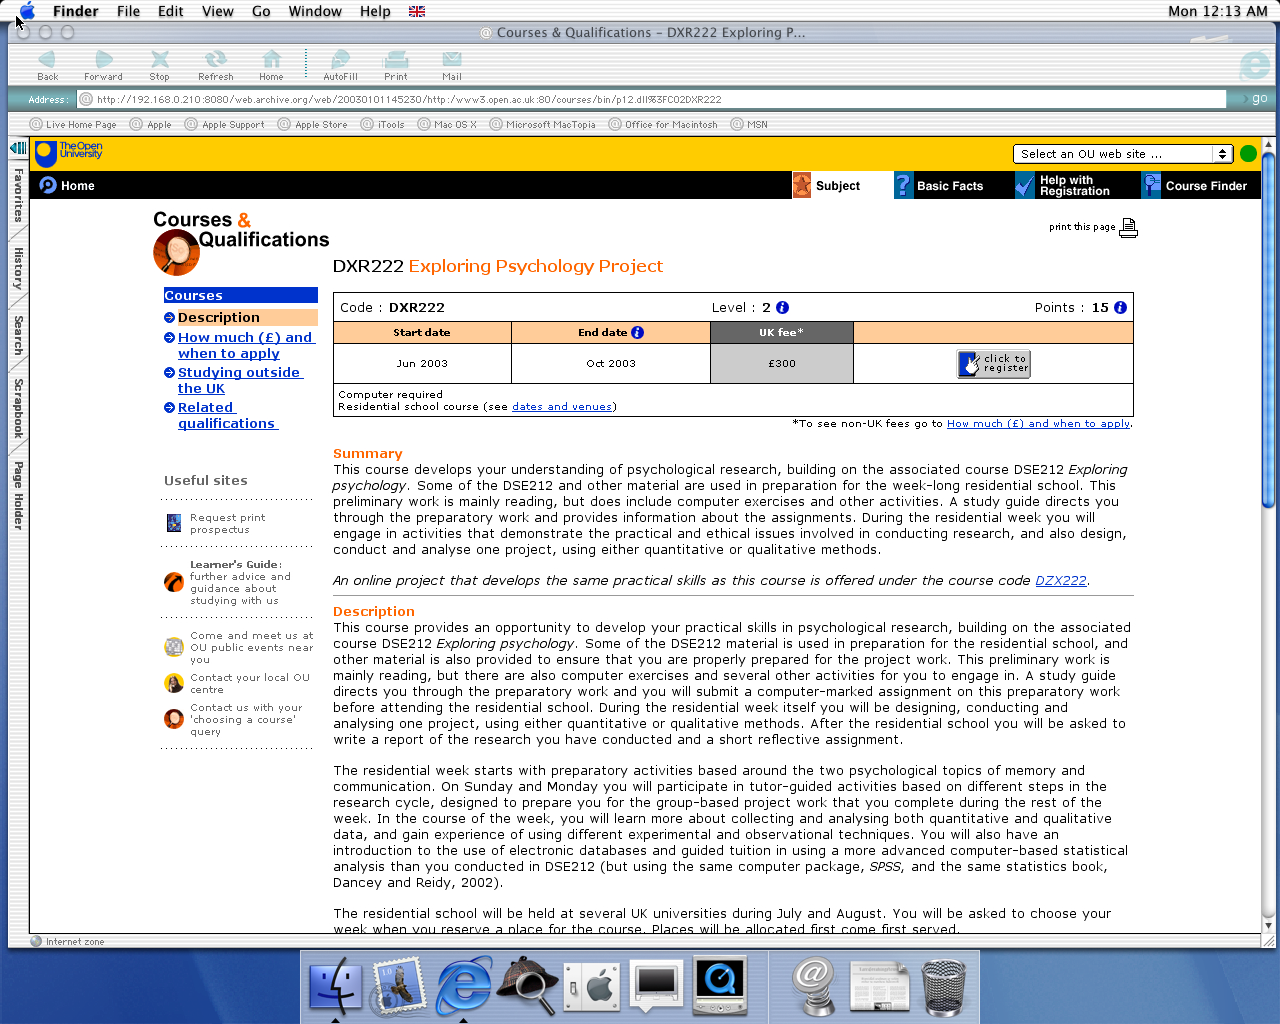 OS X 10.0 PPC with Microsoft Internet Explorer 5.1 for Mac Preview displaying a page from Open University archived at January 01, 2003 at 14:52:30